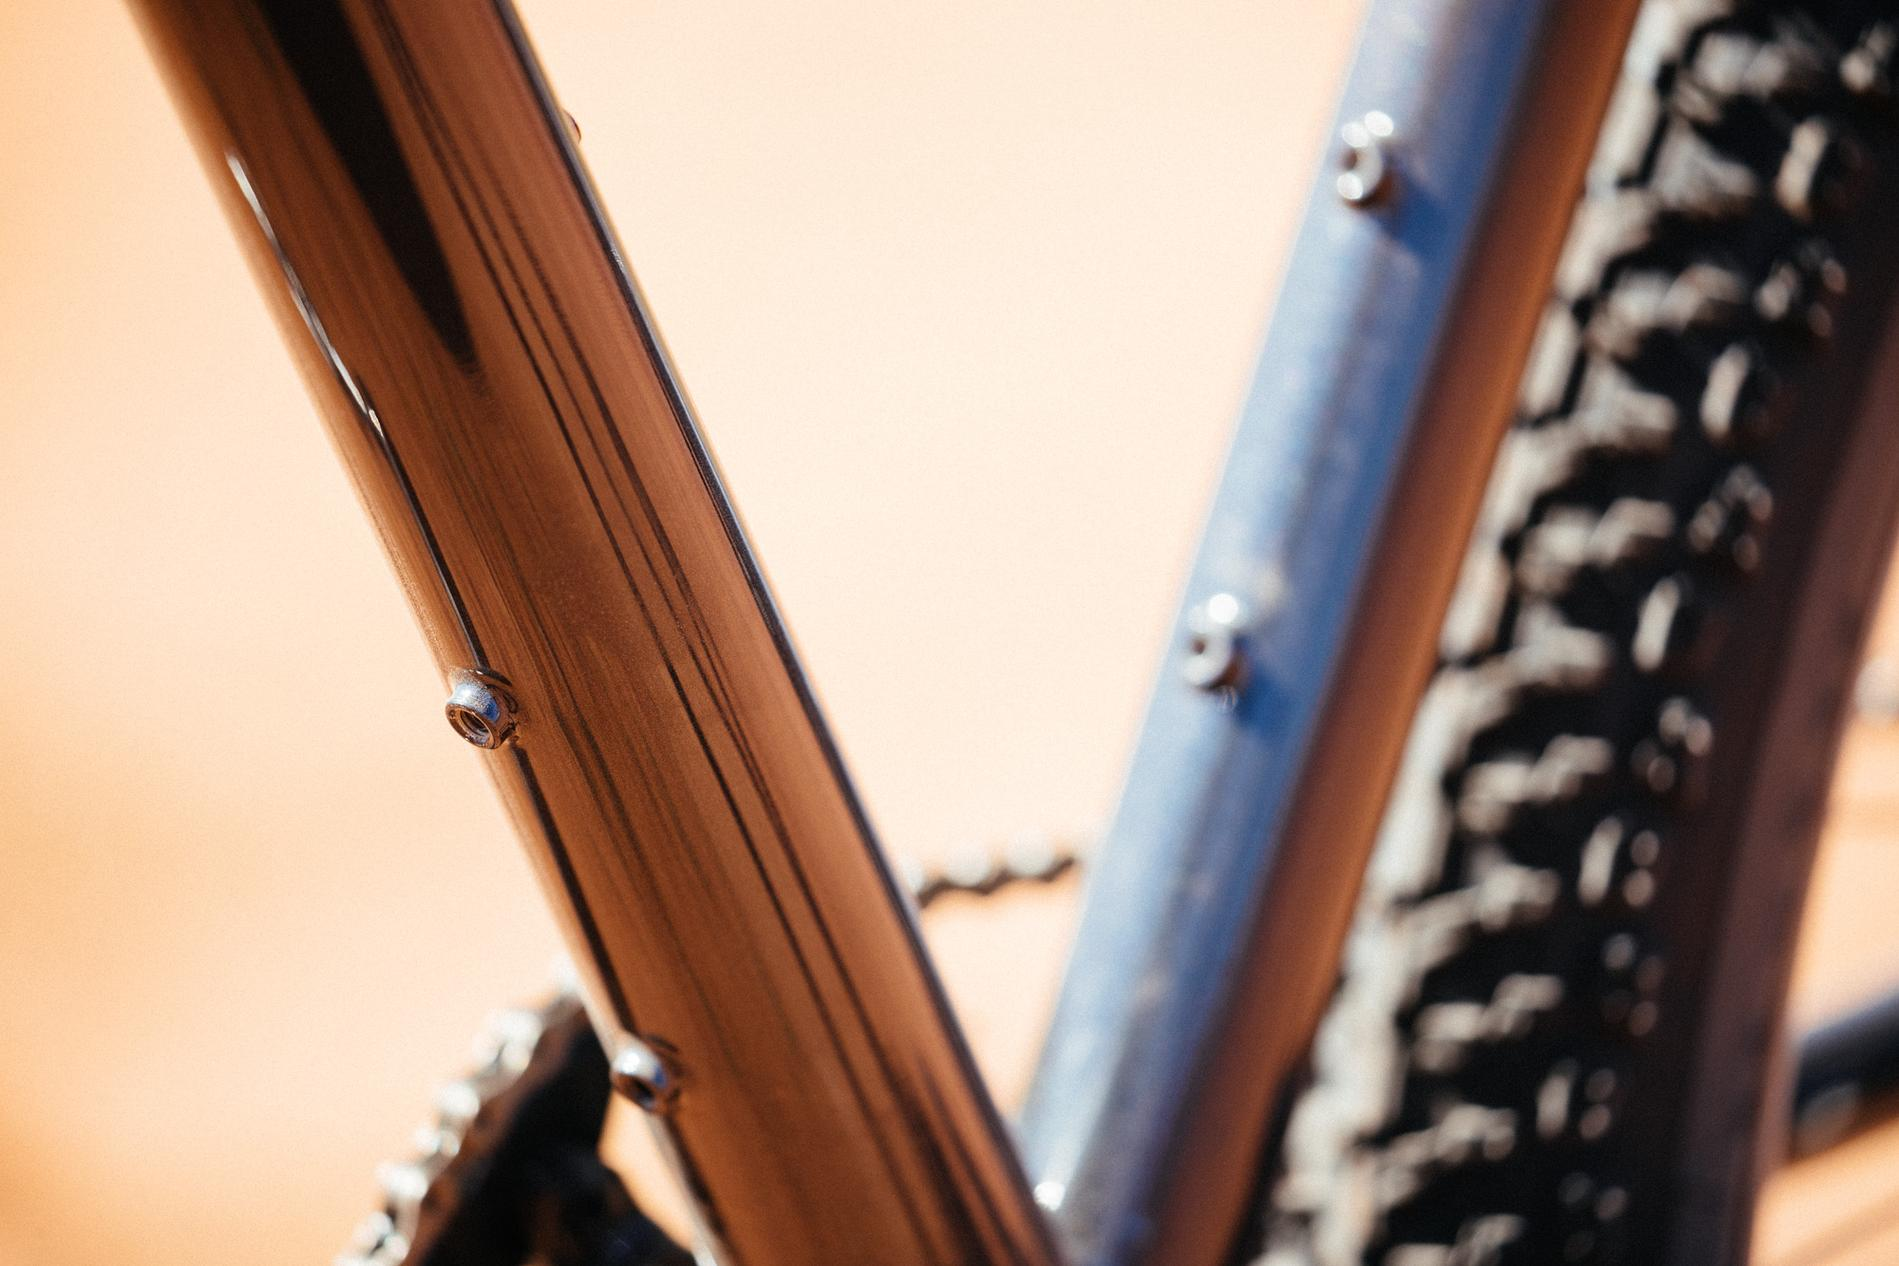 Bobby from Distric Bicycles' Oklahoma Red Dirt Moots Hardtail-22